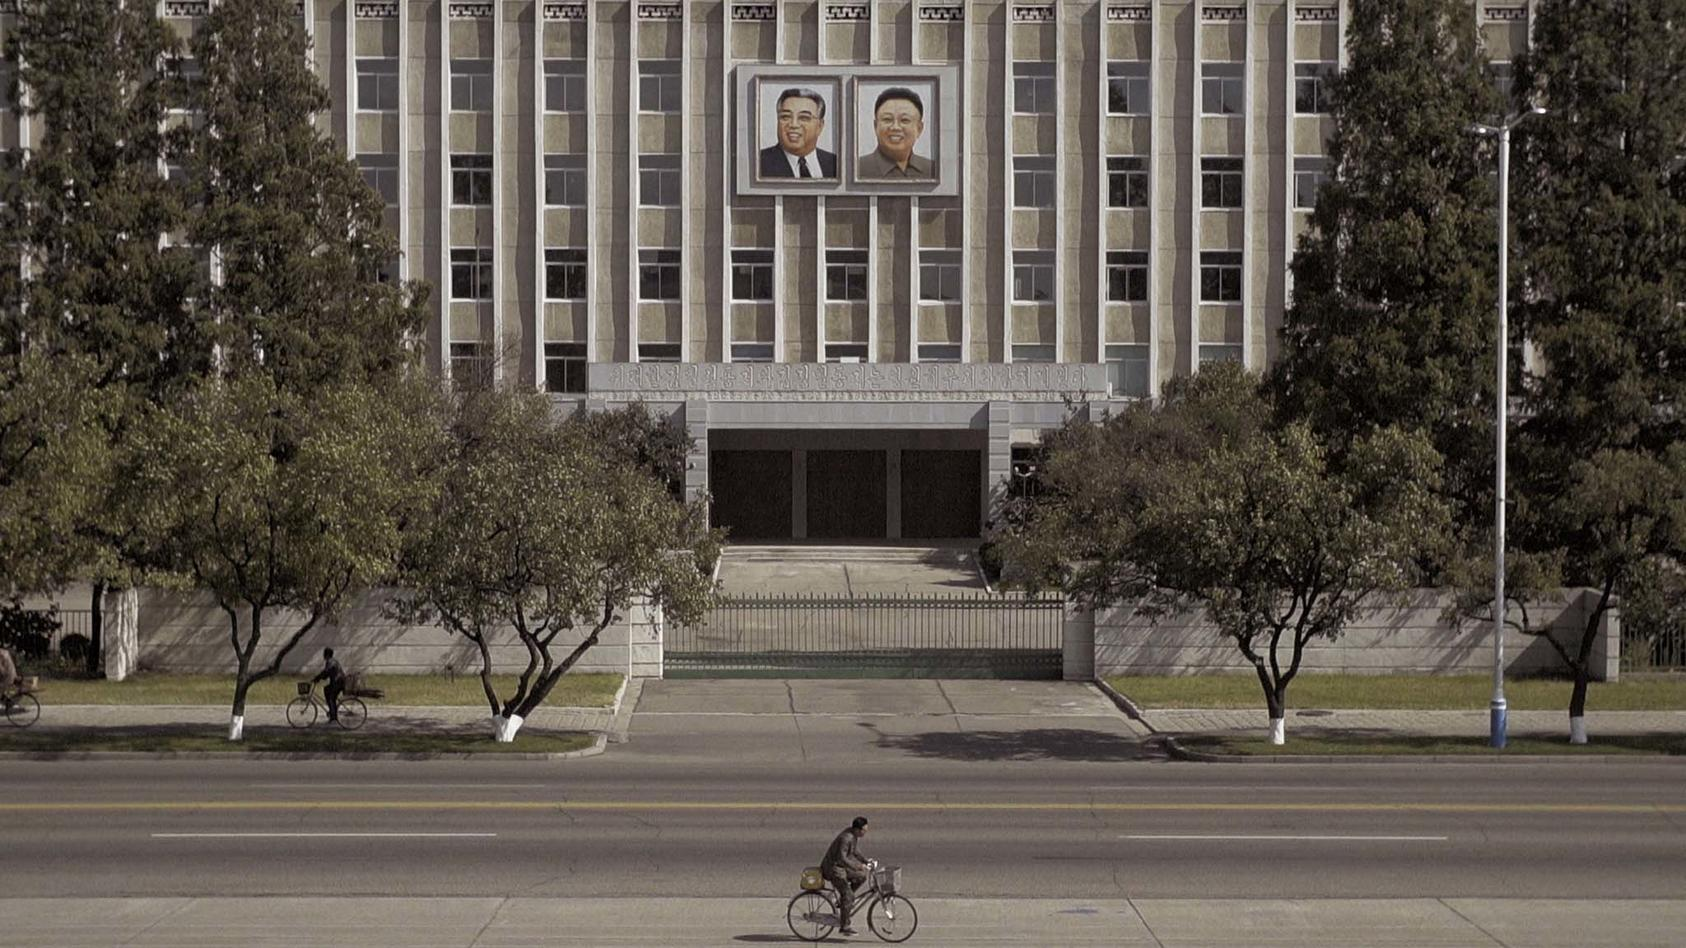 Portraits of Kim Il-Sung, the founder of North Korea and his son, Kim Jong-il, hang on a building in the capital, Pyongyang, Sept. 29, 2017. (Jonah M. Kessel/The New York Times)